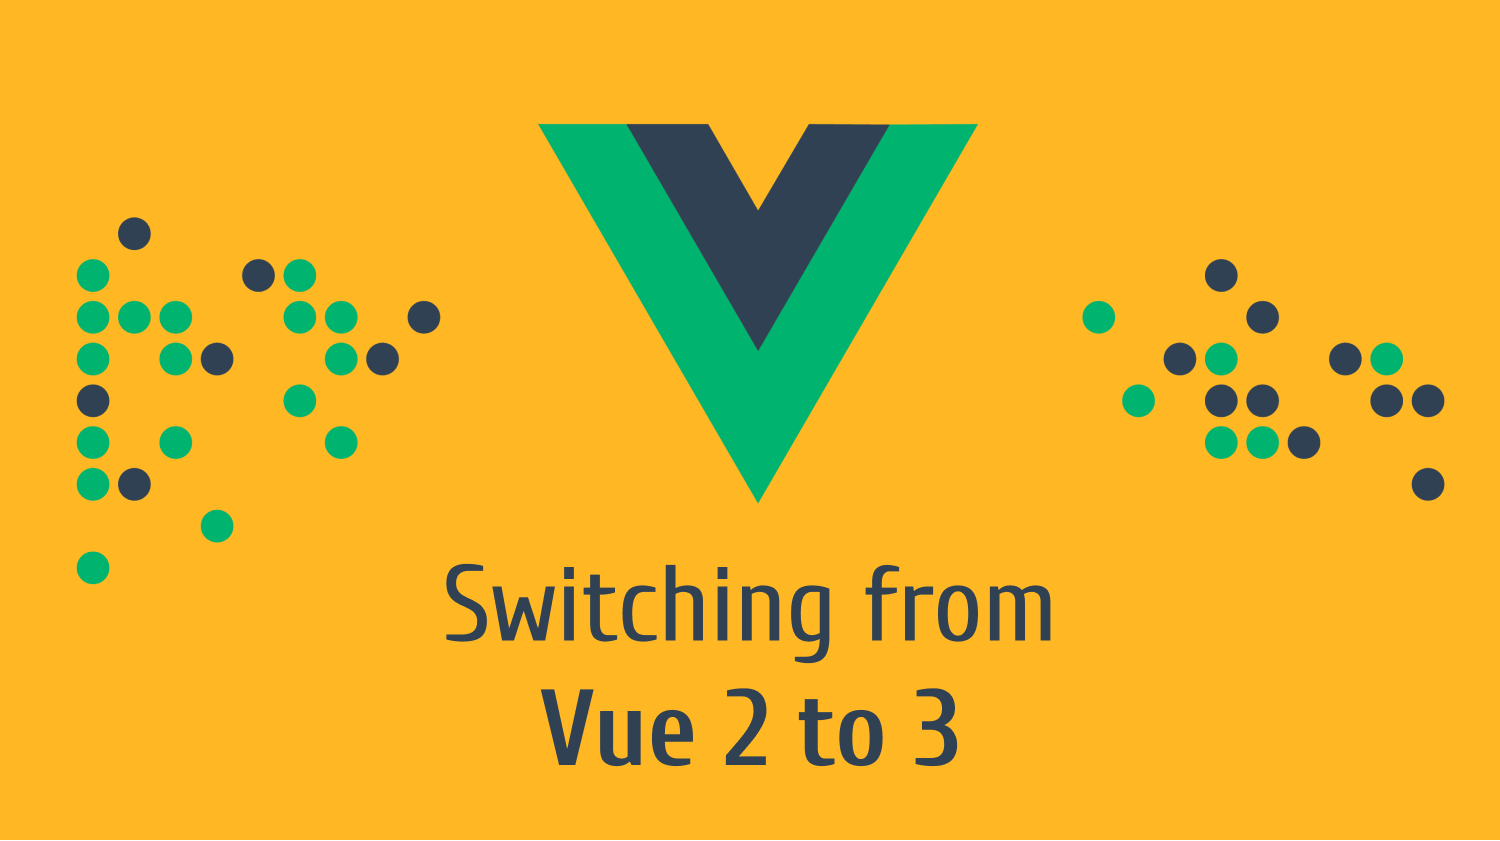 Switching from Vue 2 to 3